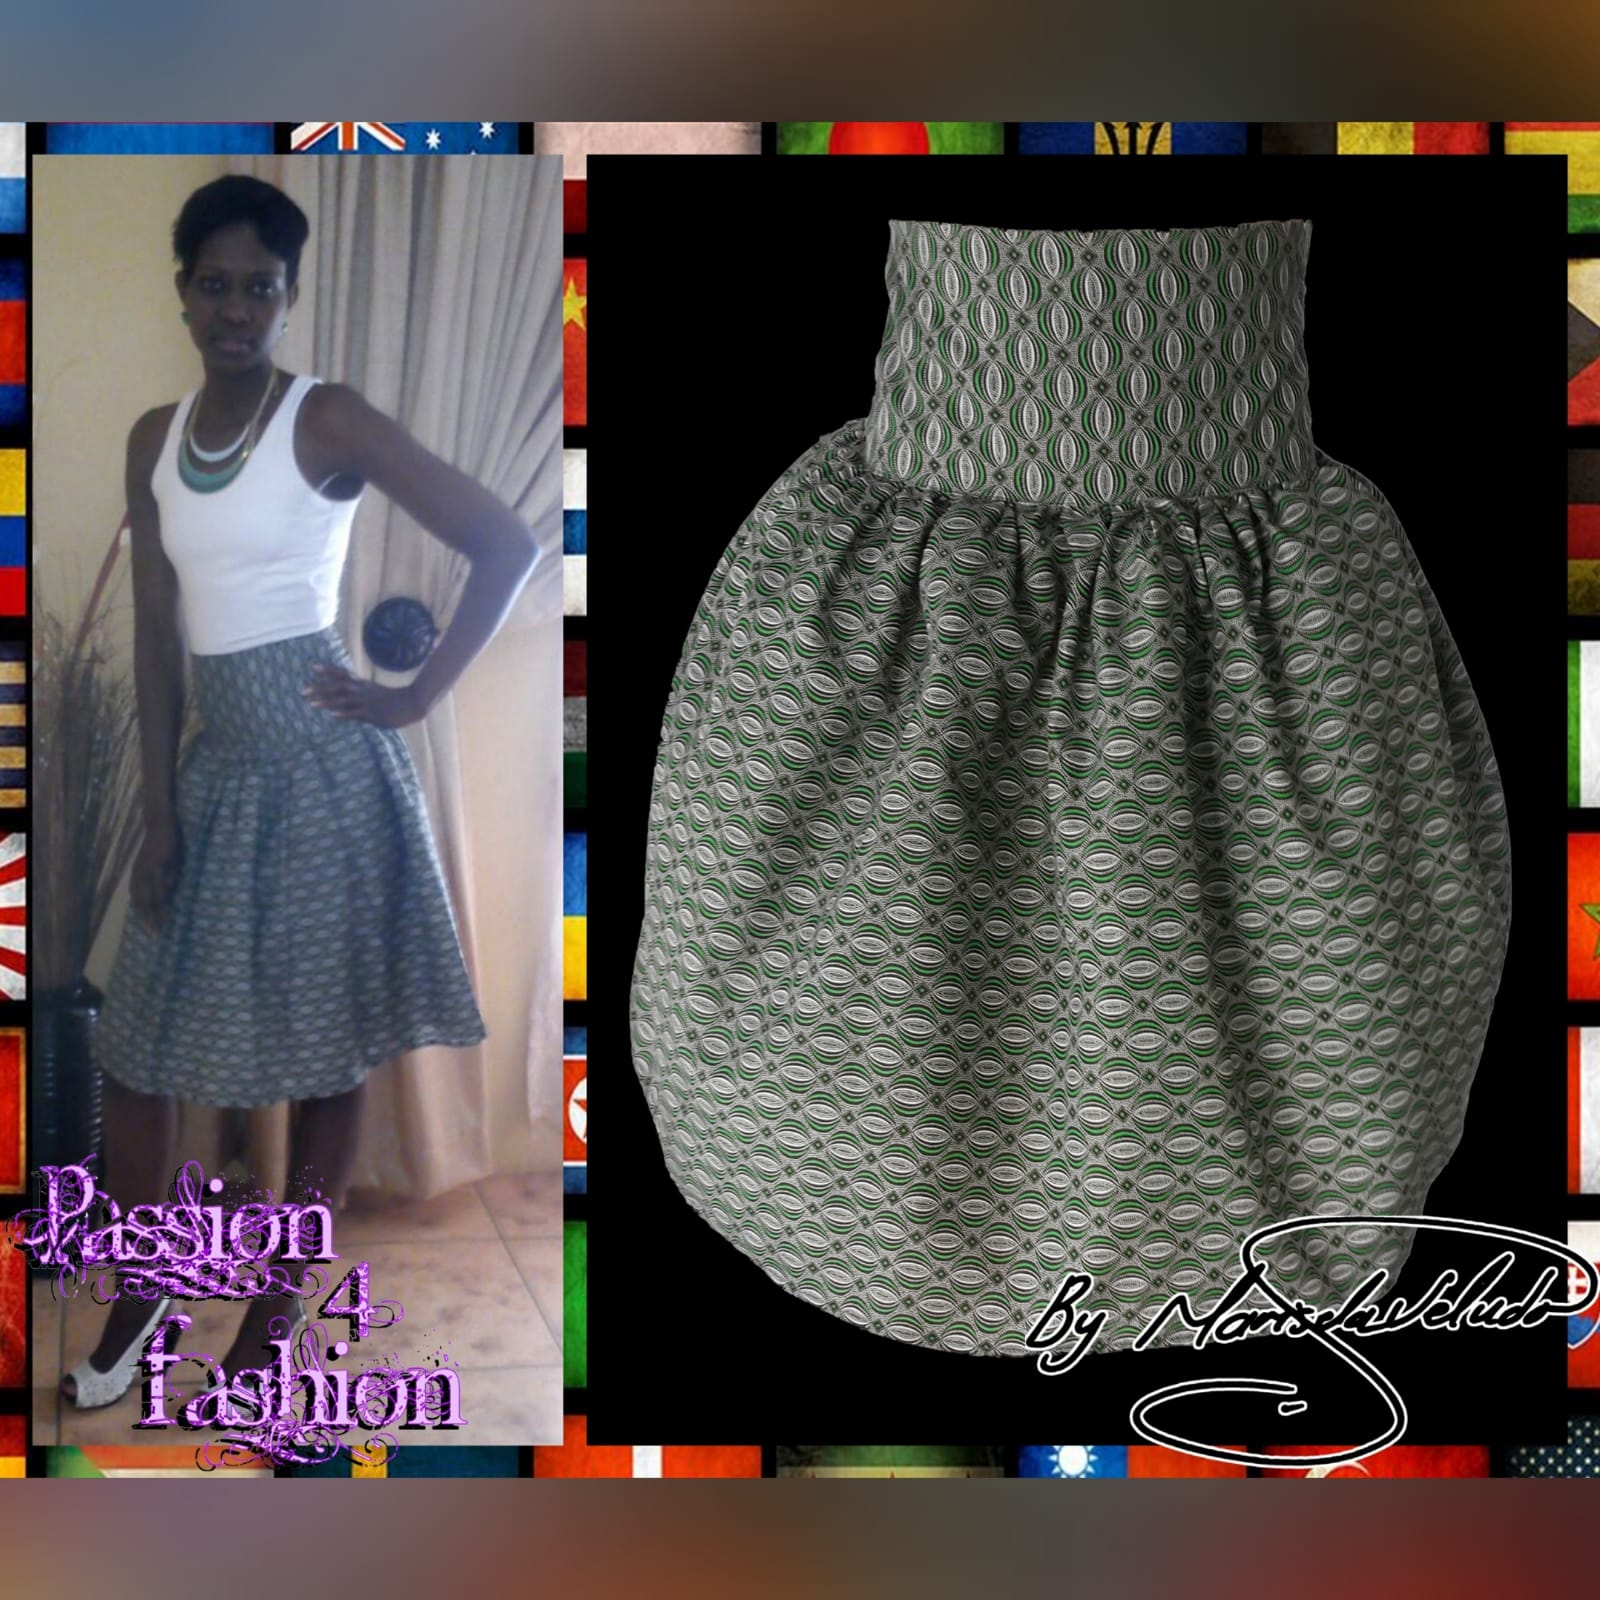 Green gathered high waist traditional skirt in xhosa print 3 a green patterned african gathered high waisted traditional skirt.